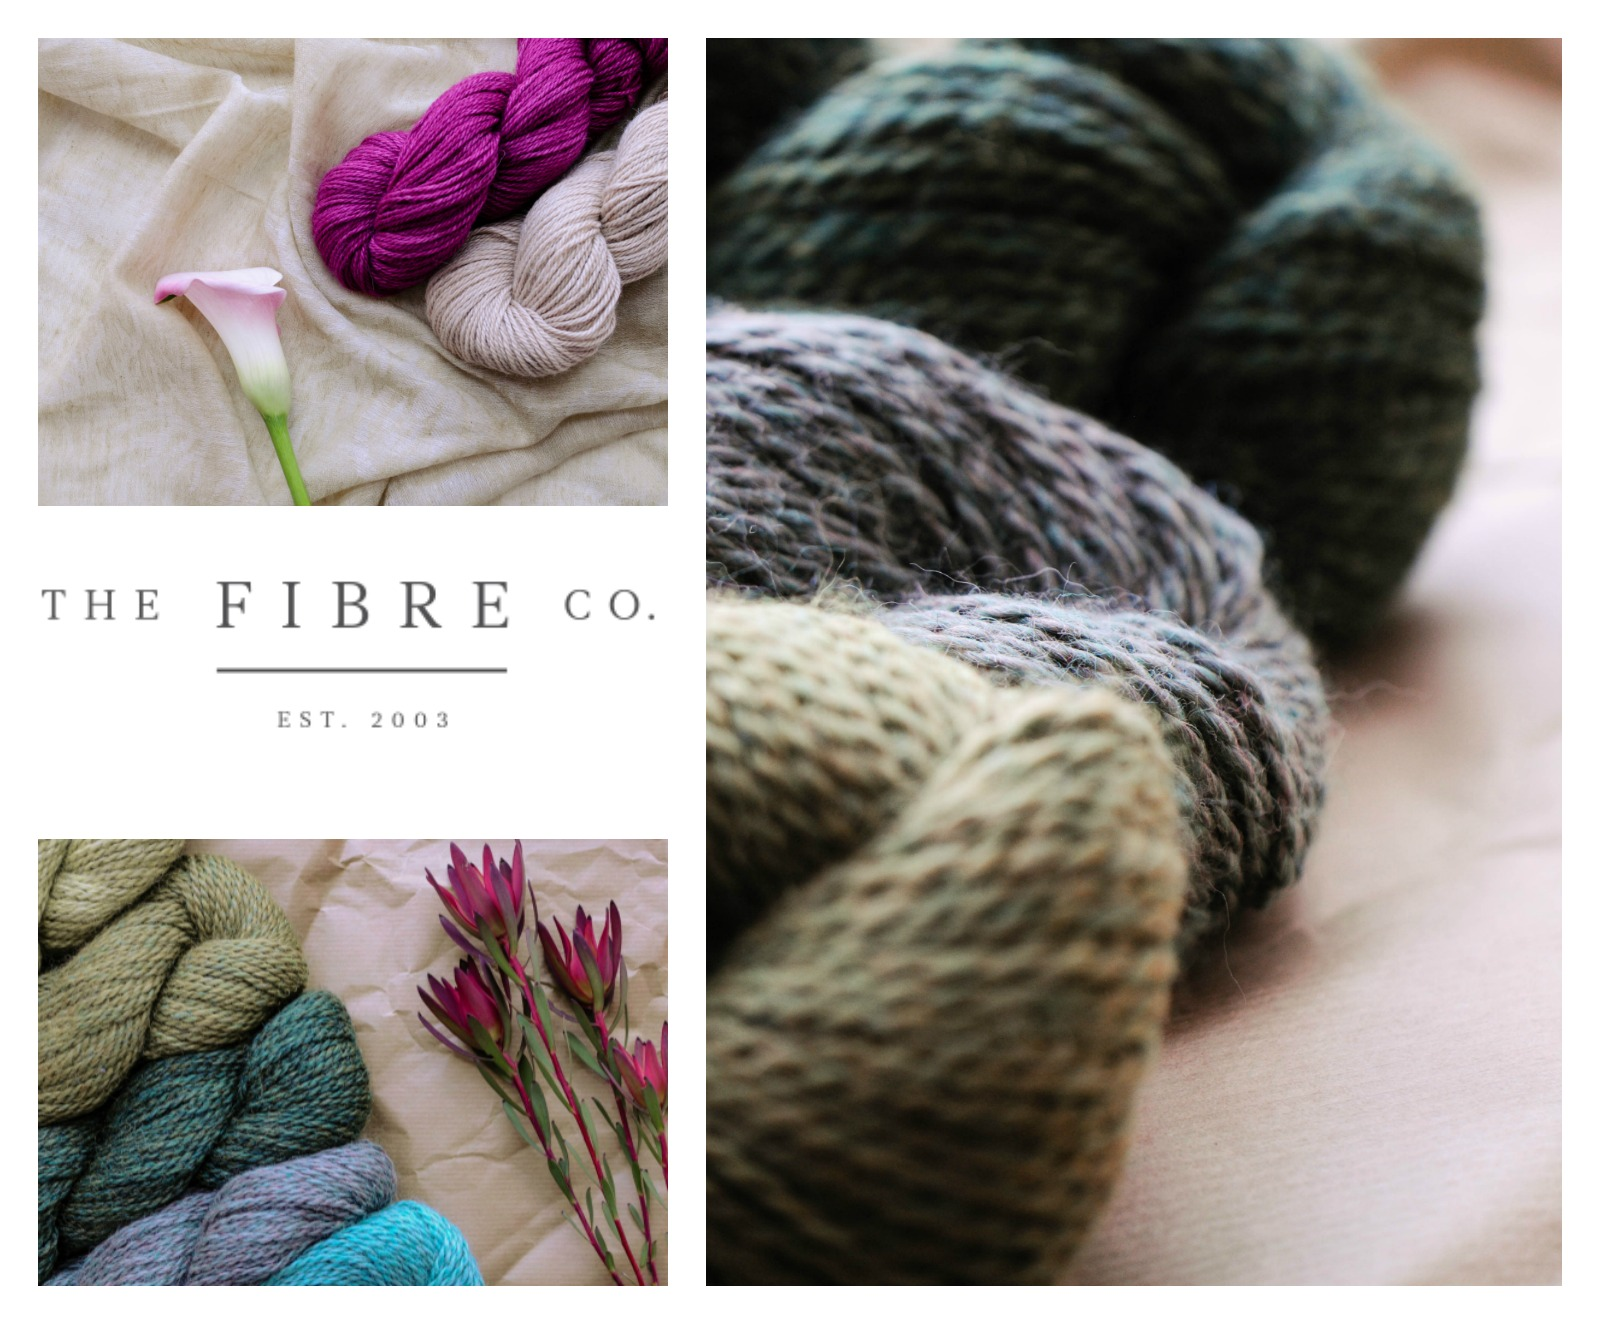 The Fibre Co. Gilmore Girls Yarn Giveaway on VeryShannon.com